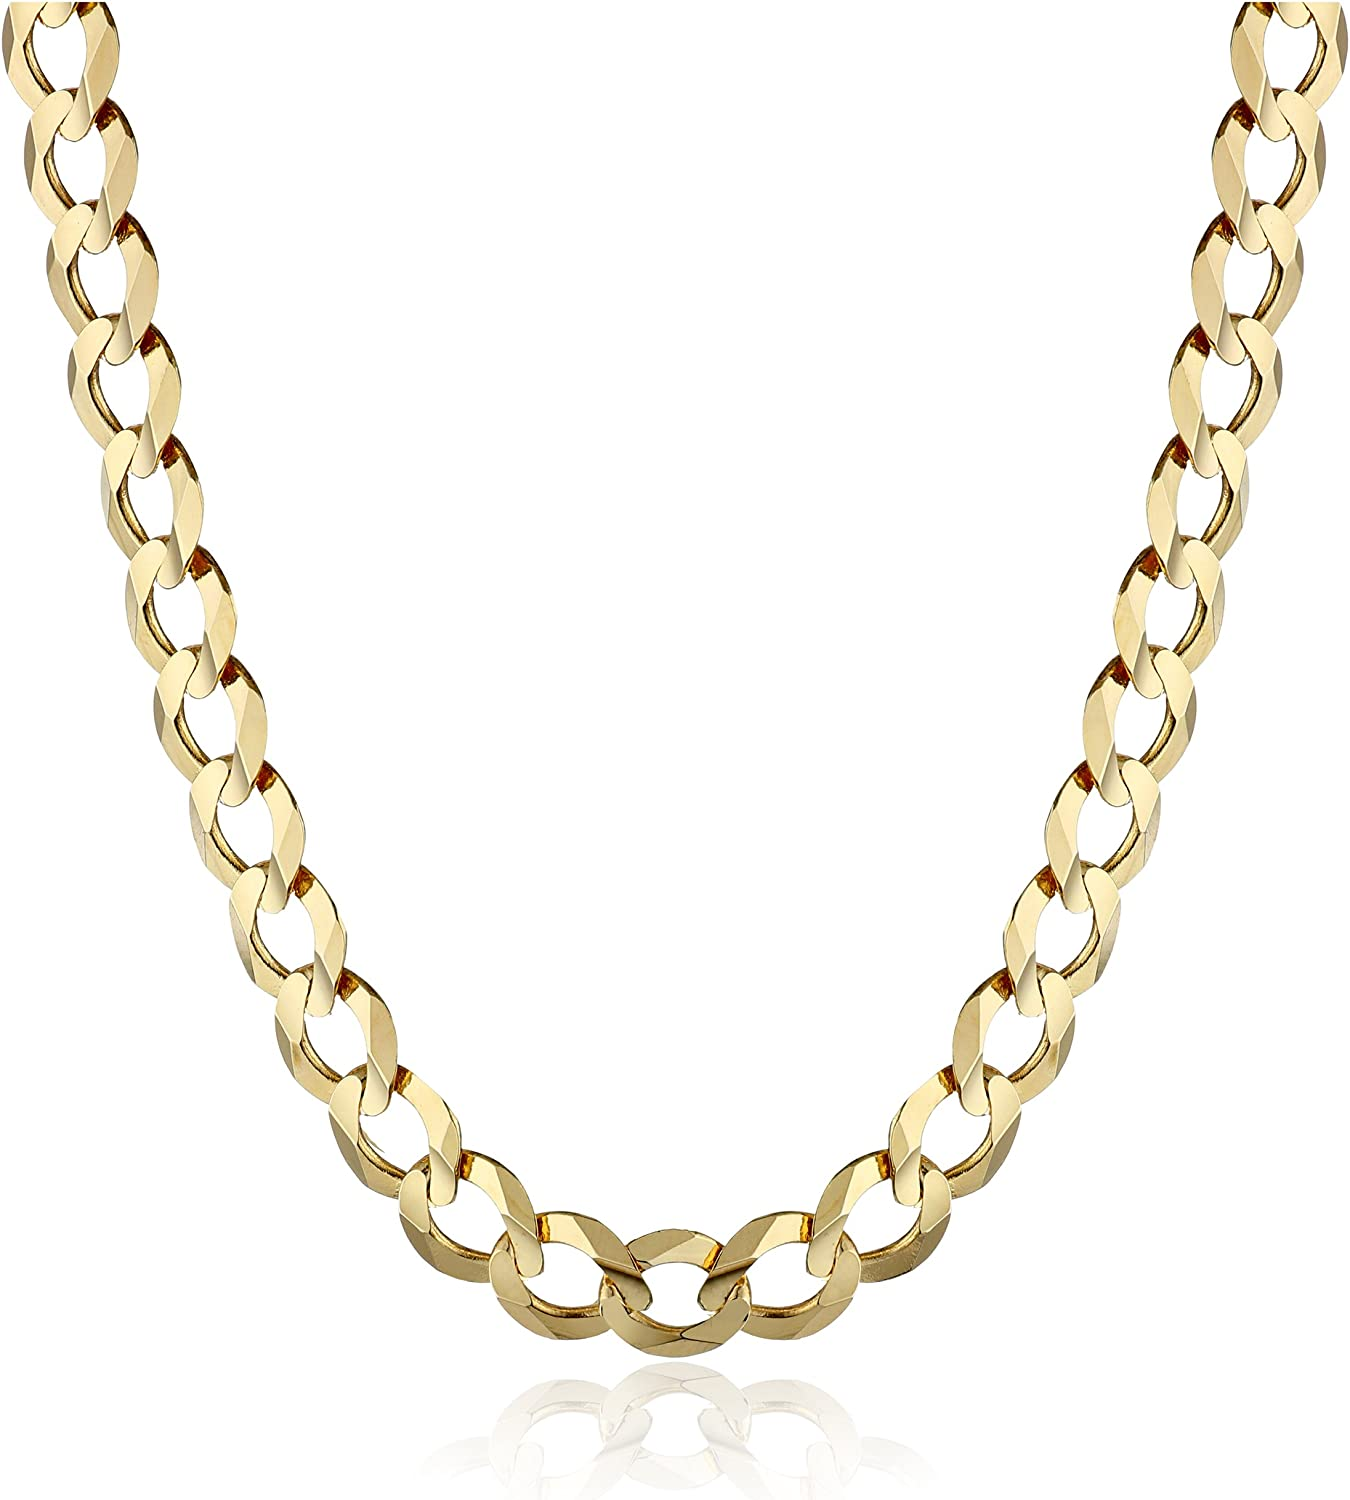 Men's 14k Gold 5.7mm Cuban Chain Necklace